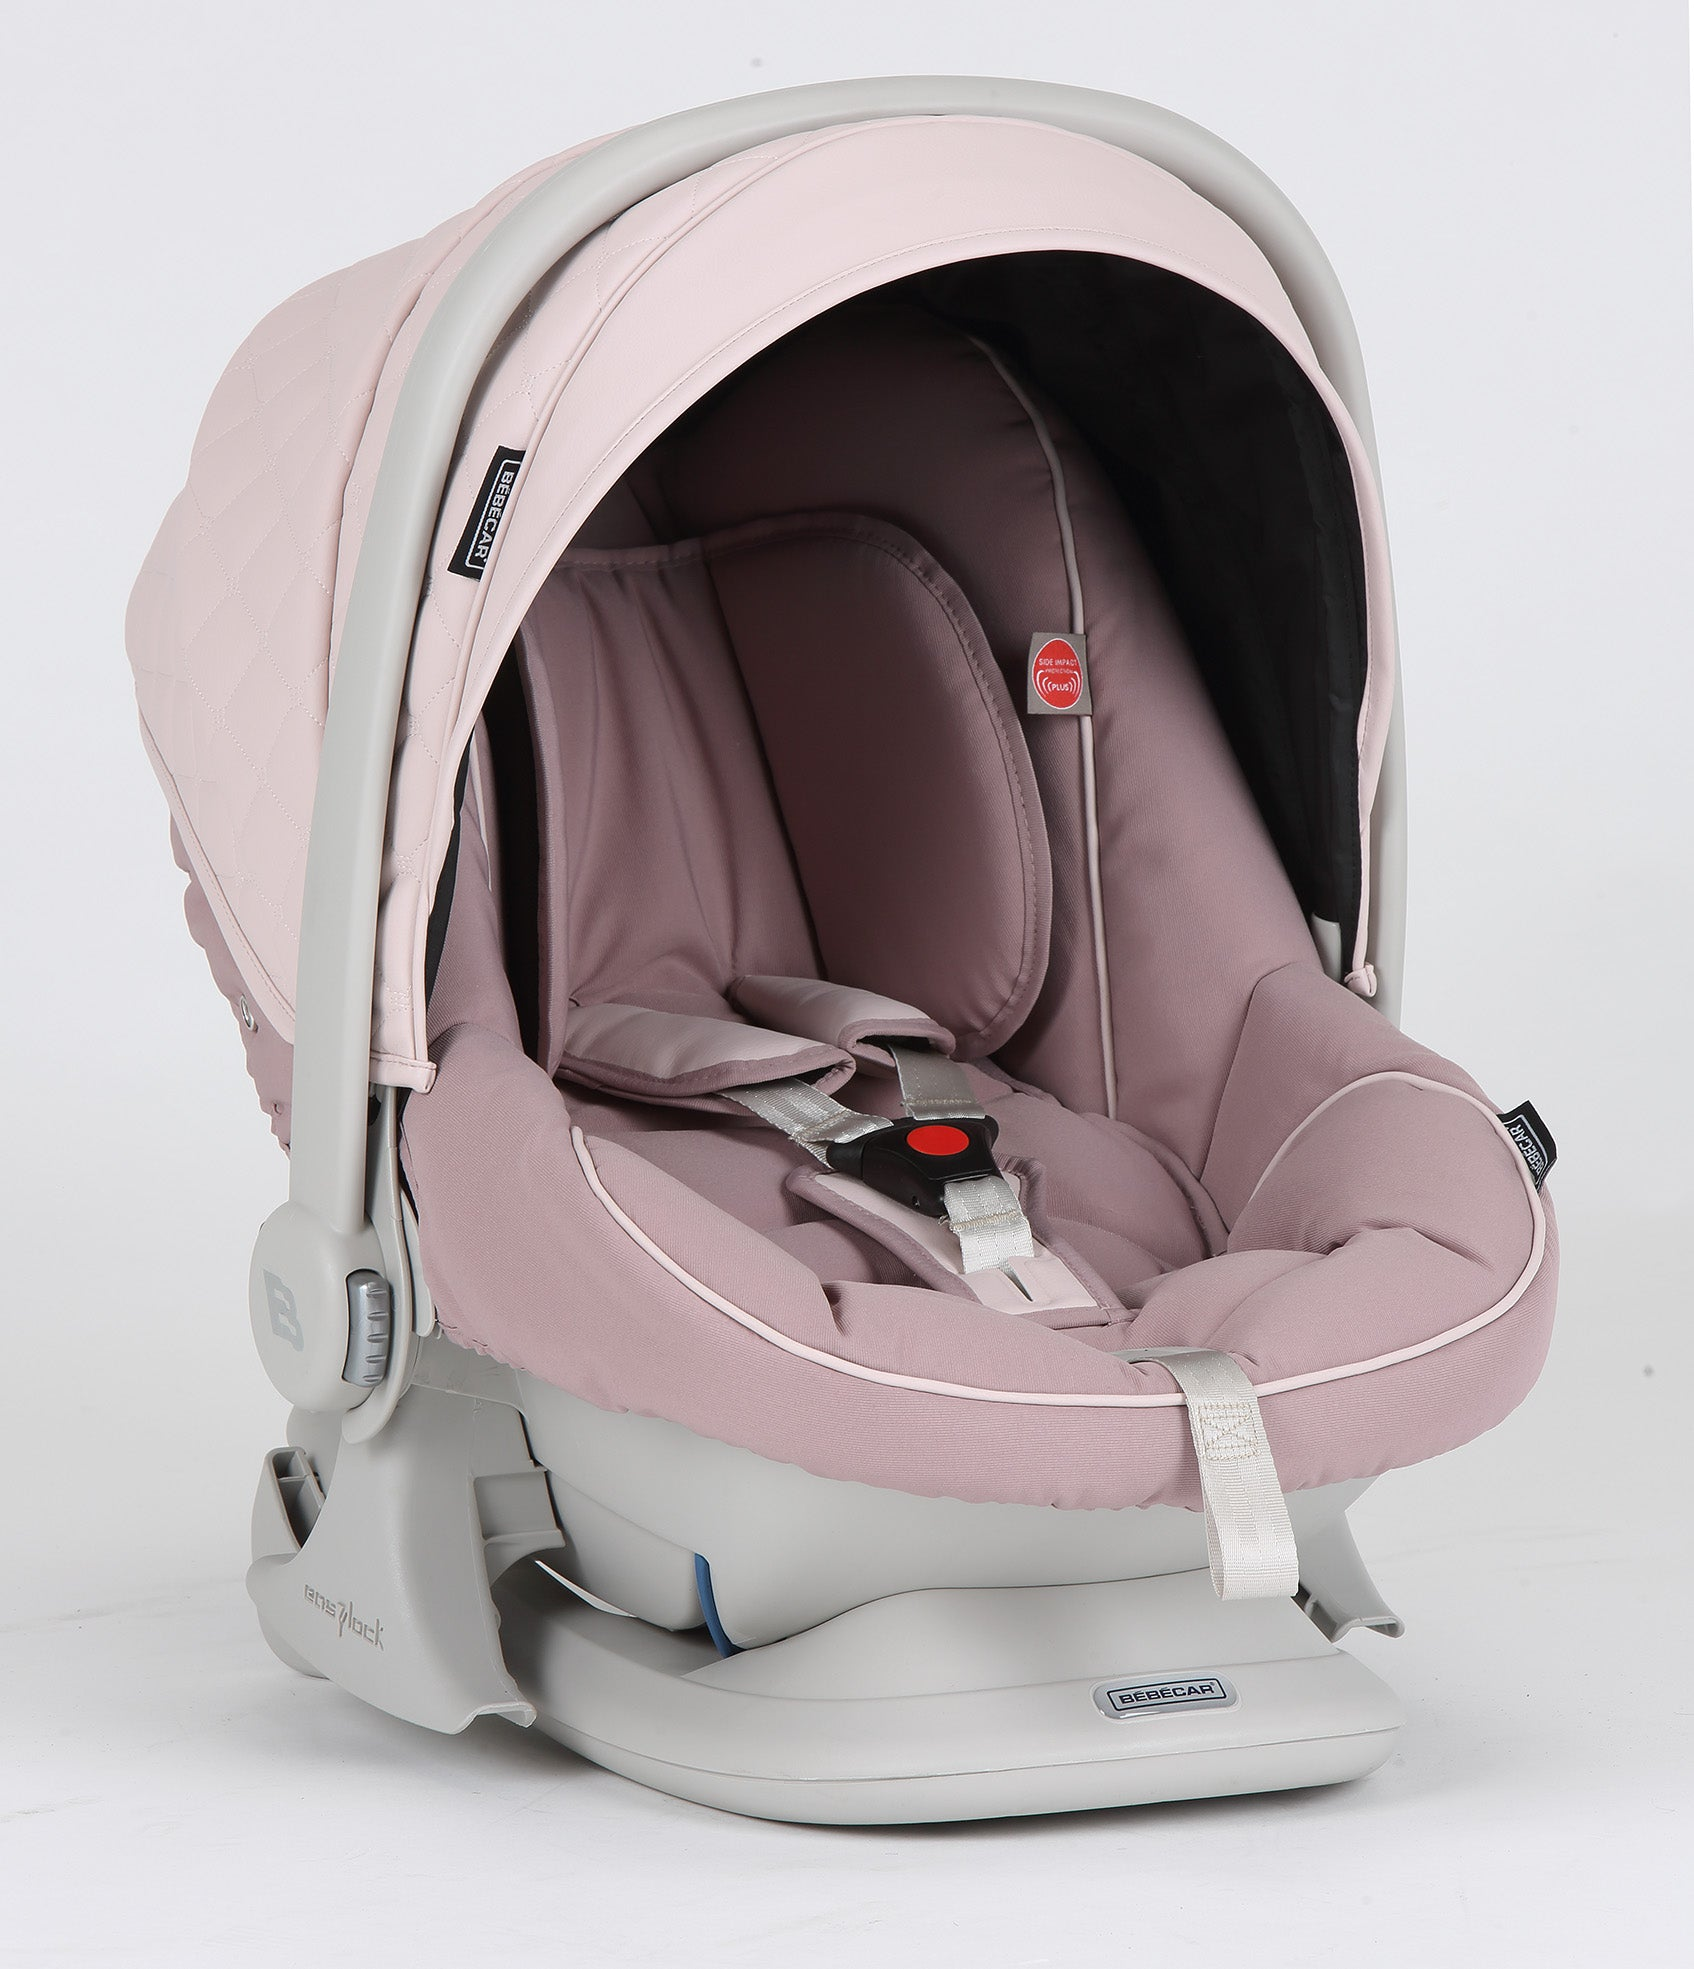 Bebecar Special Easymaxi ElxE Infant Car Seat - Soft Pink